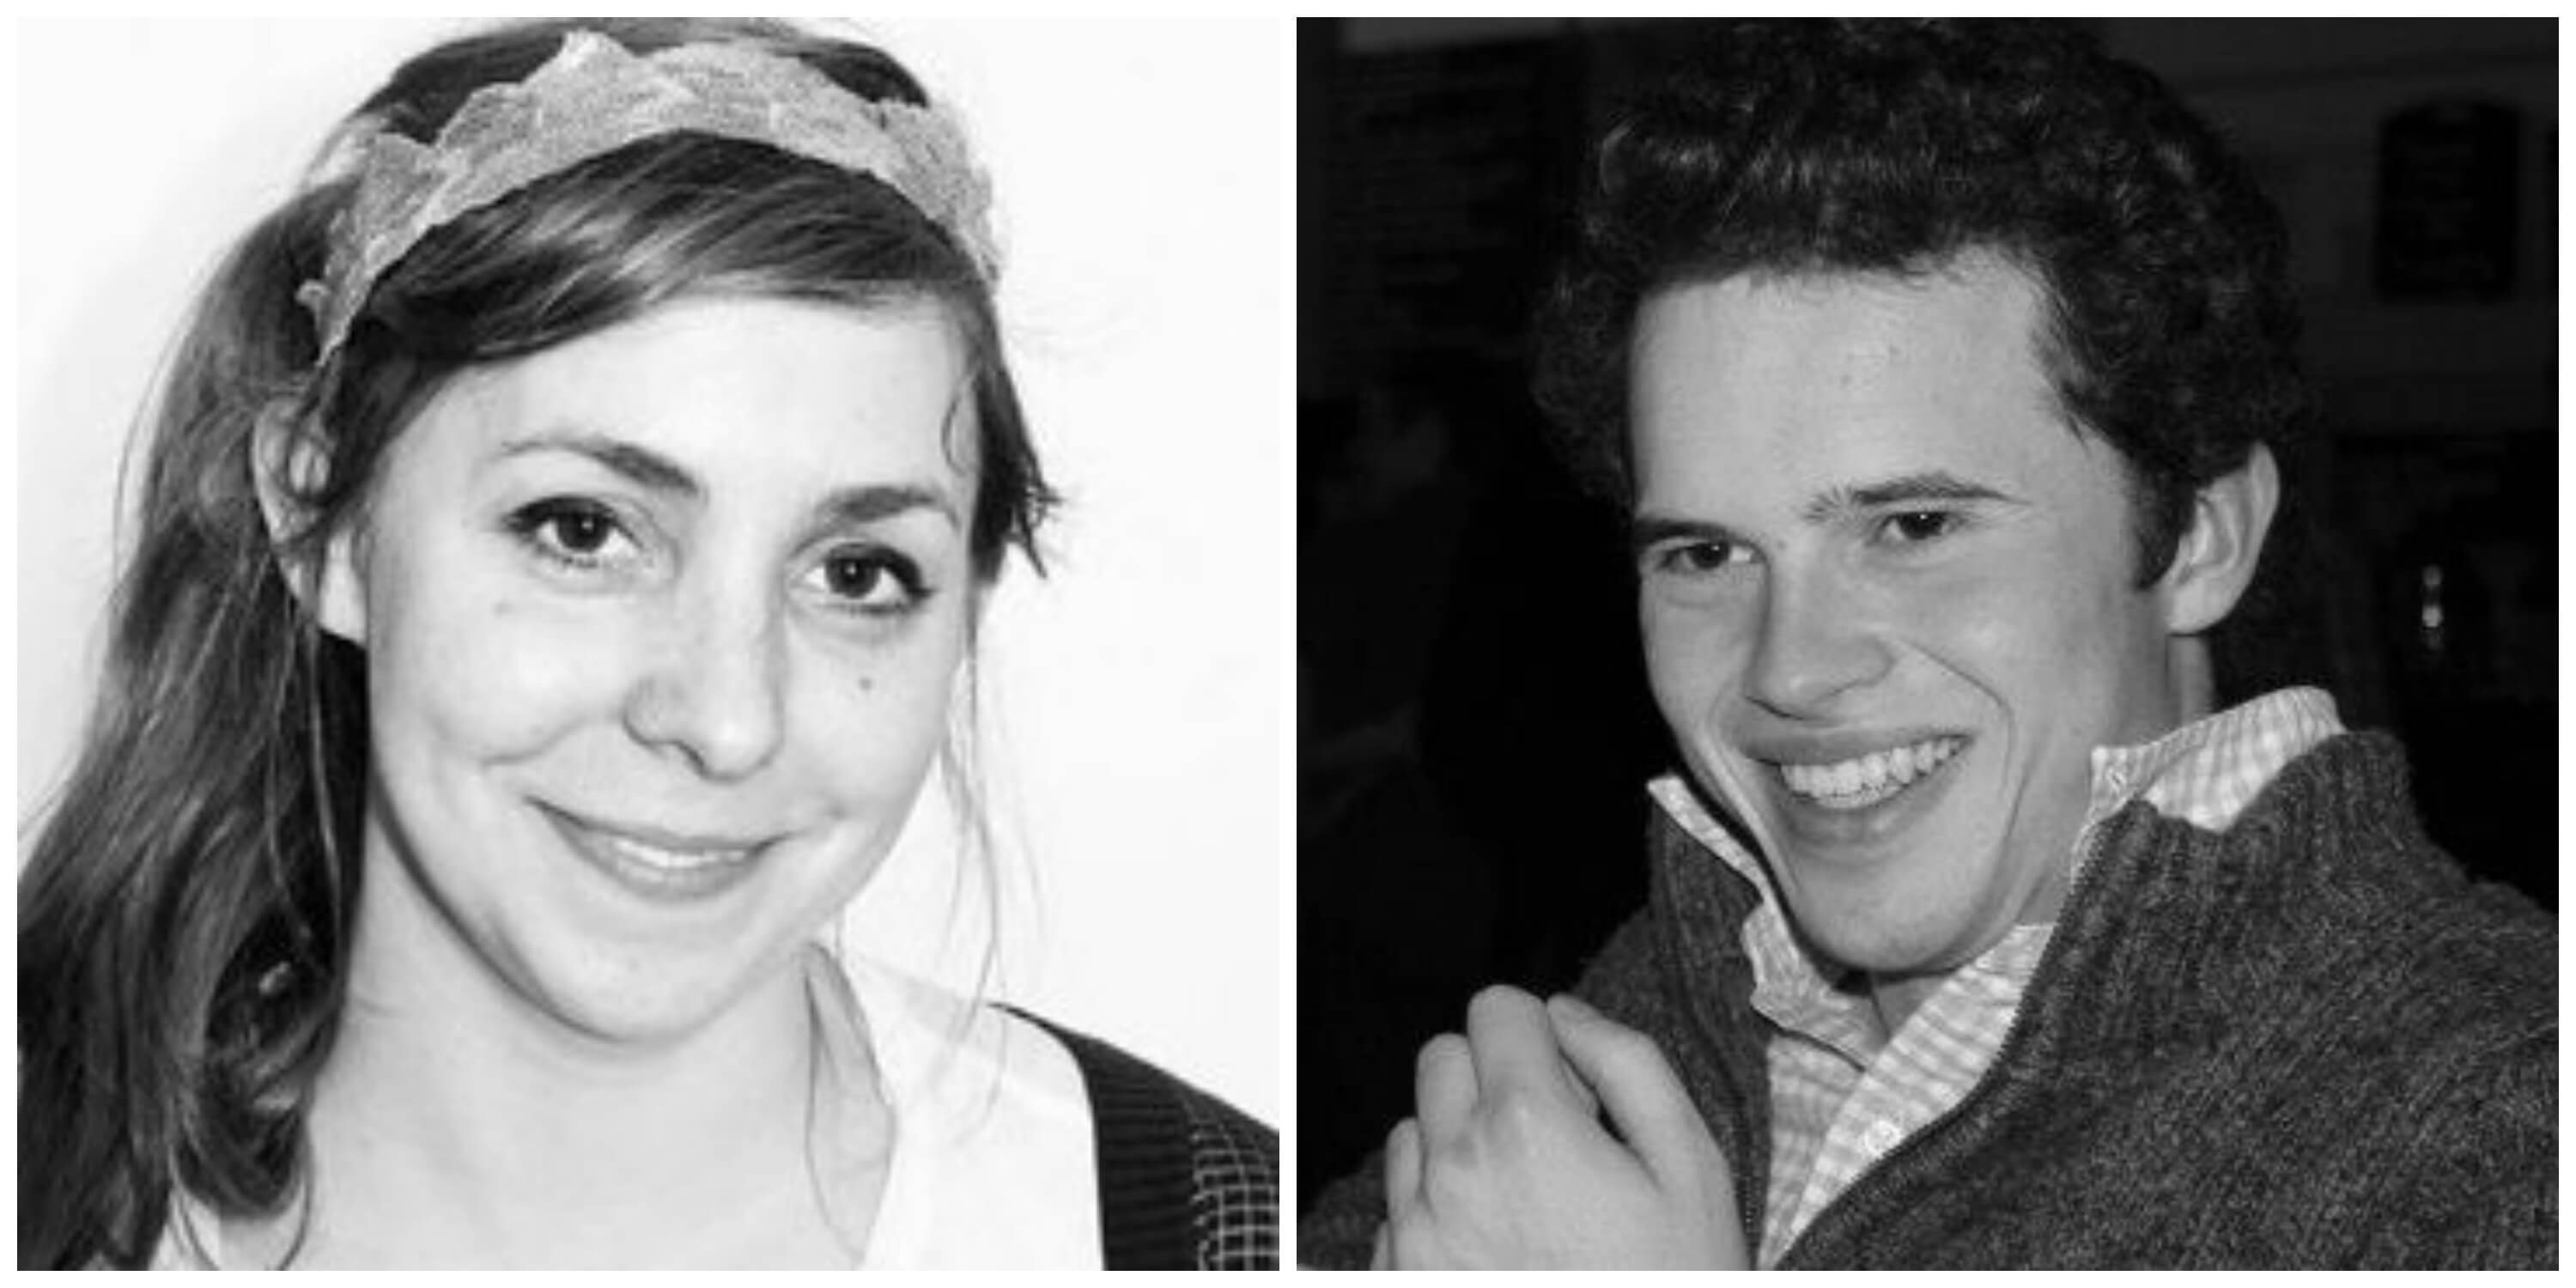 Introducing the OxHRH Blog's New Editors!